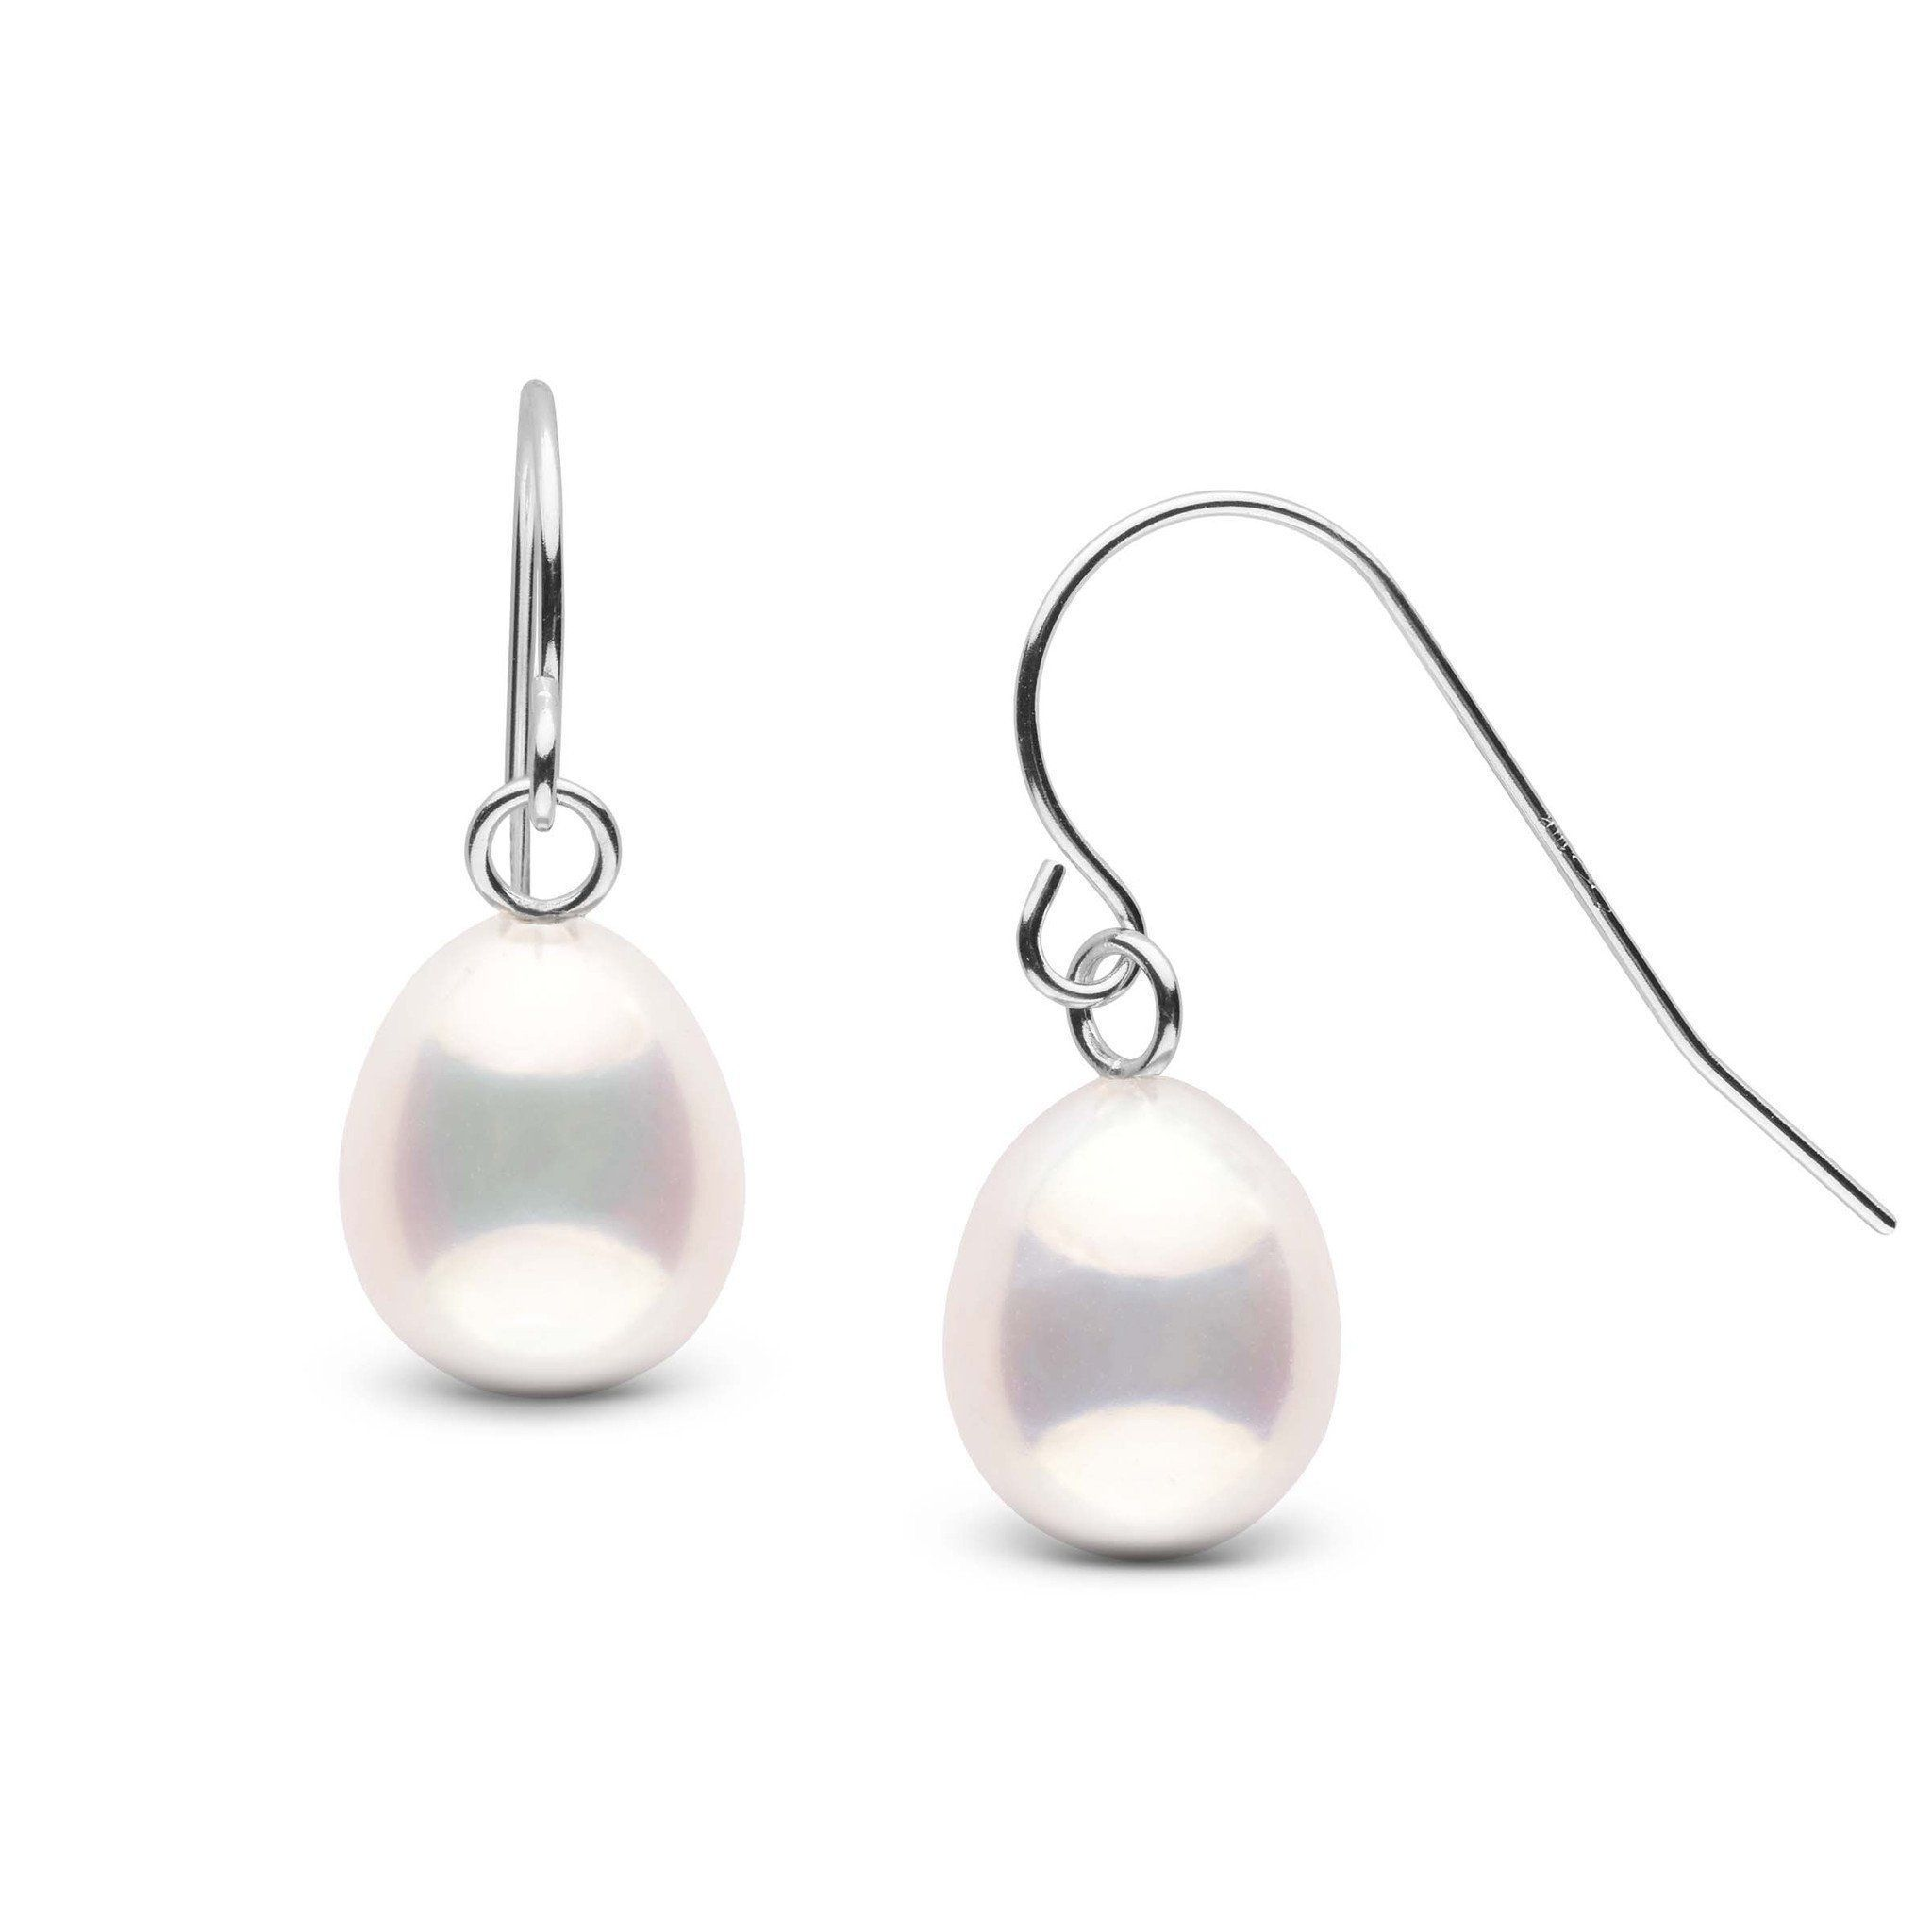 cultured amazon south diamonds pearls clarity tara nwnuleal collection color with galaxy h dp cttw earrings com gold g natural pearl sea